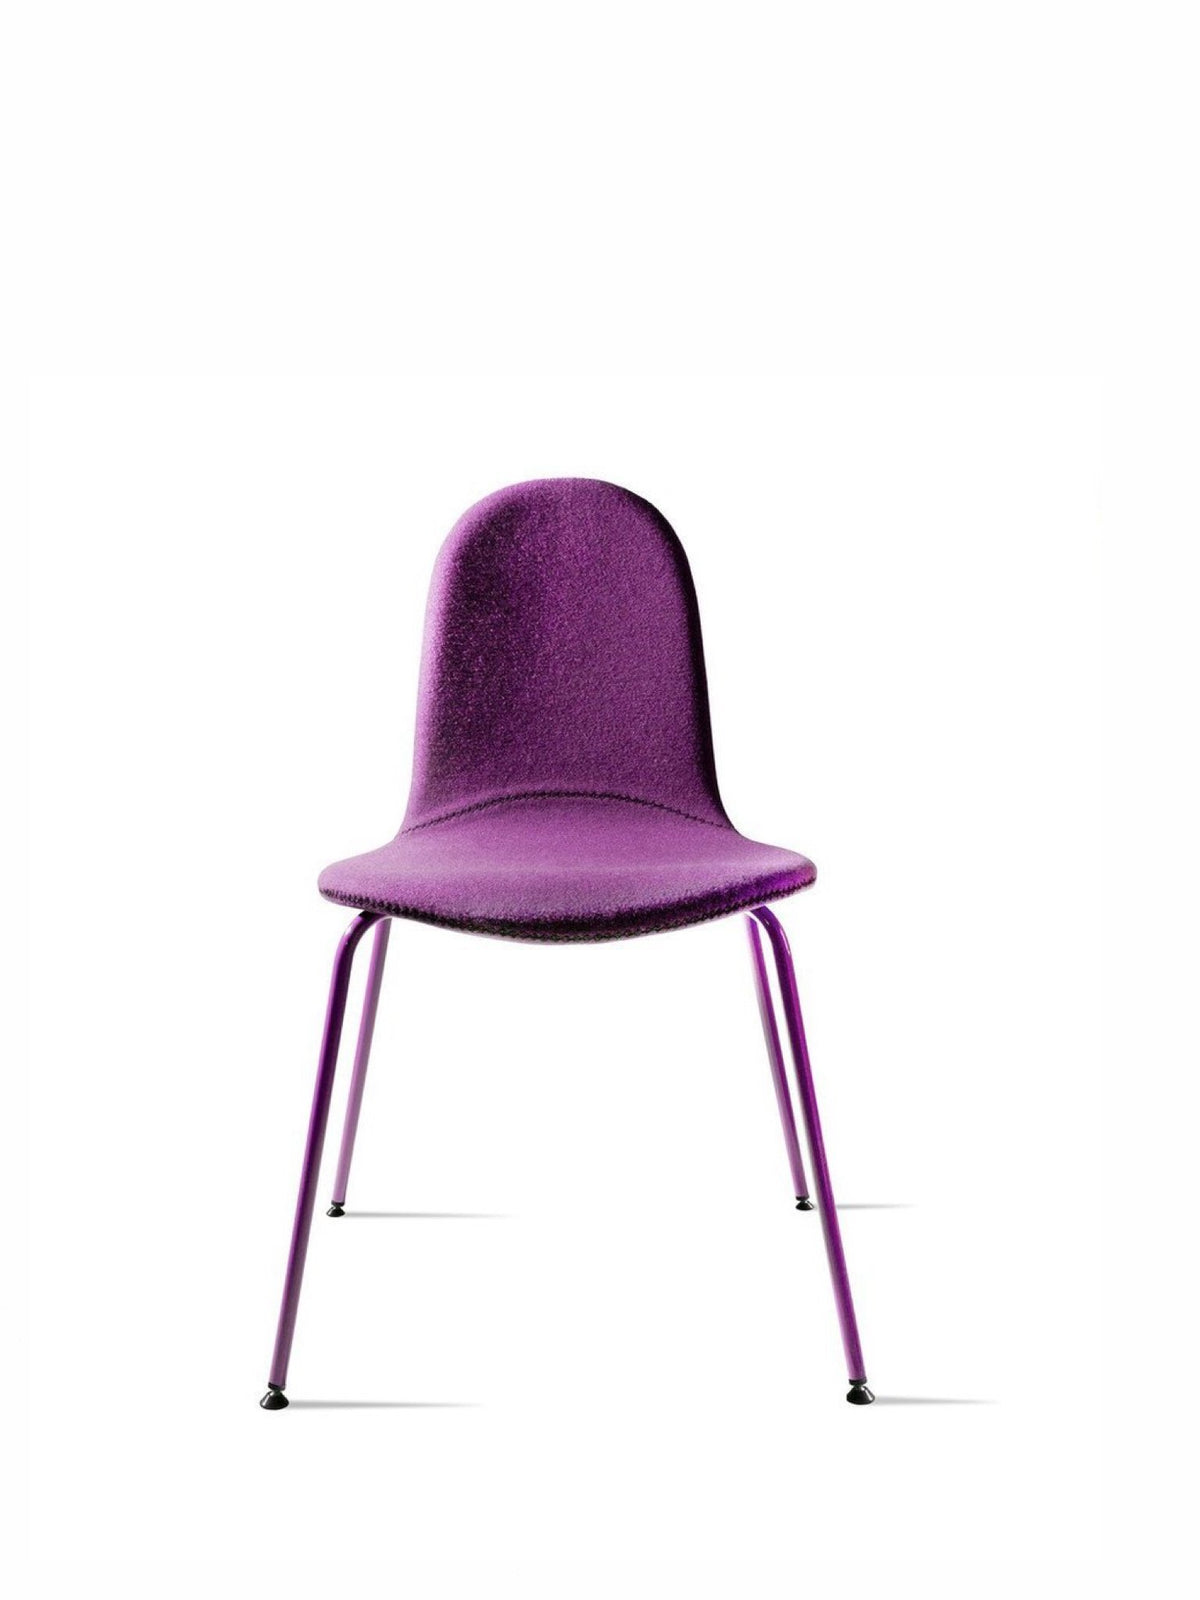 P-Nut Side Chair-Job's-Contract Furniture Store